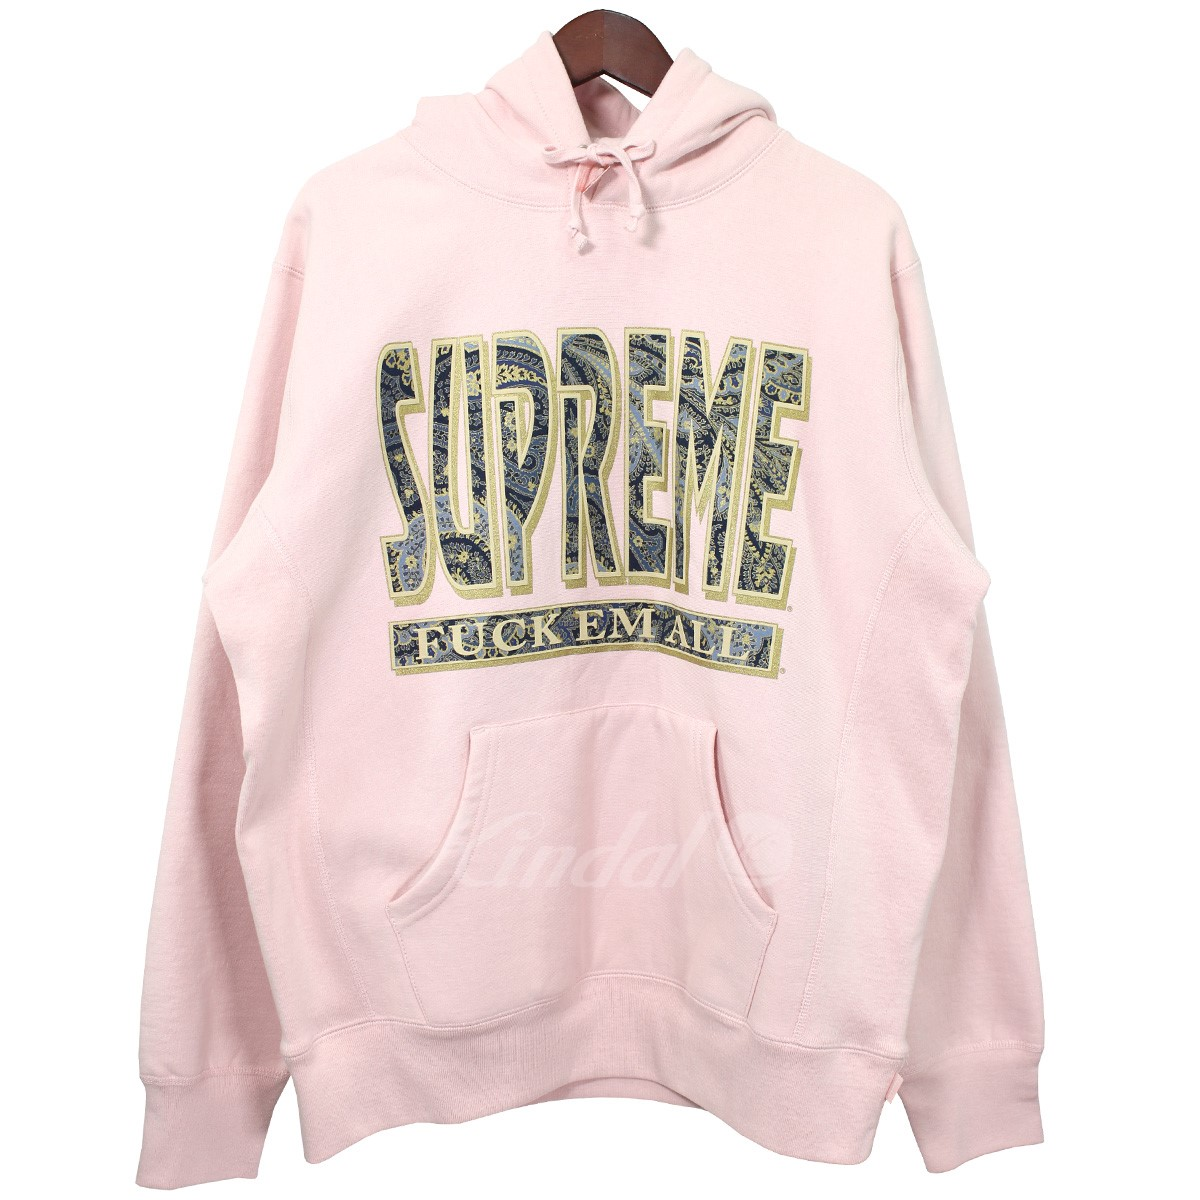 【中古】SUPREME 2017AW Paisley Fuck Em All Hooded Sweatshirt ピーチ サイズ:M 【200519】(シュプリーム)